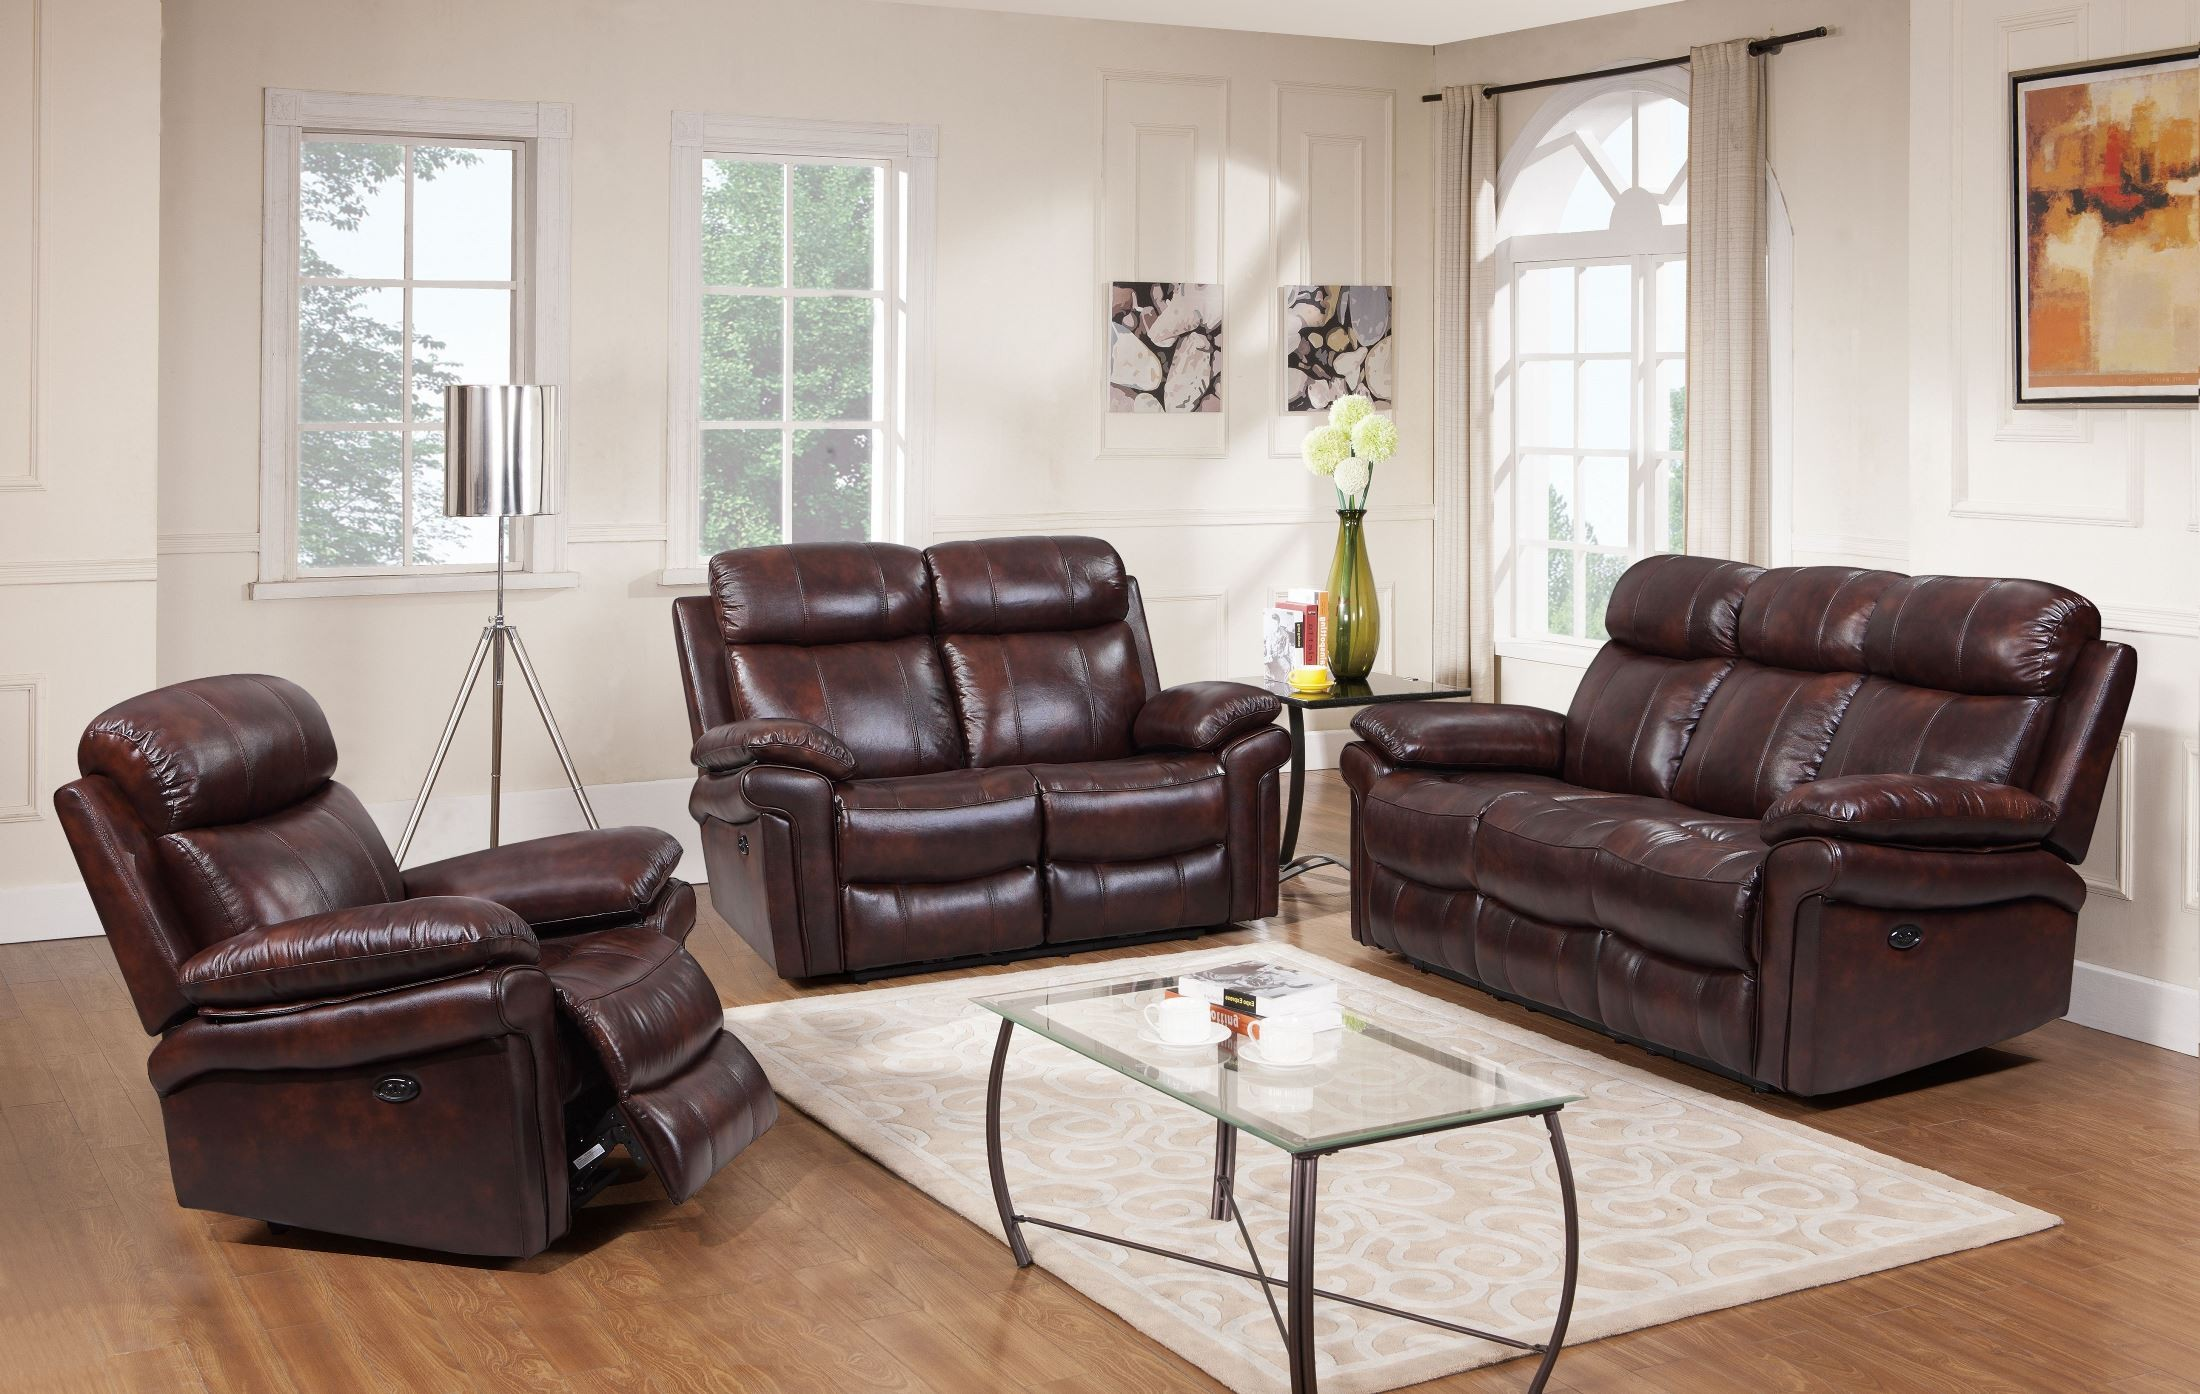 Shae joplin brown leather power reclining living room set Reclining living room furniture